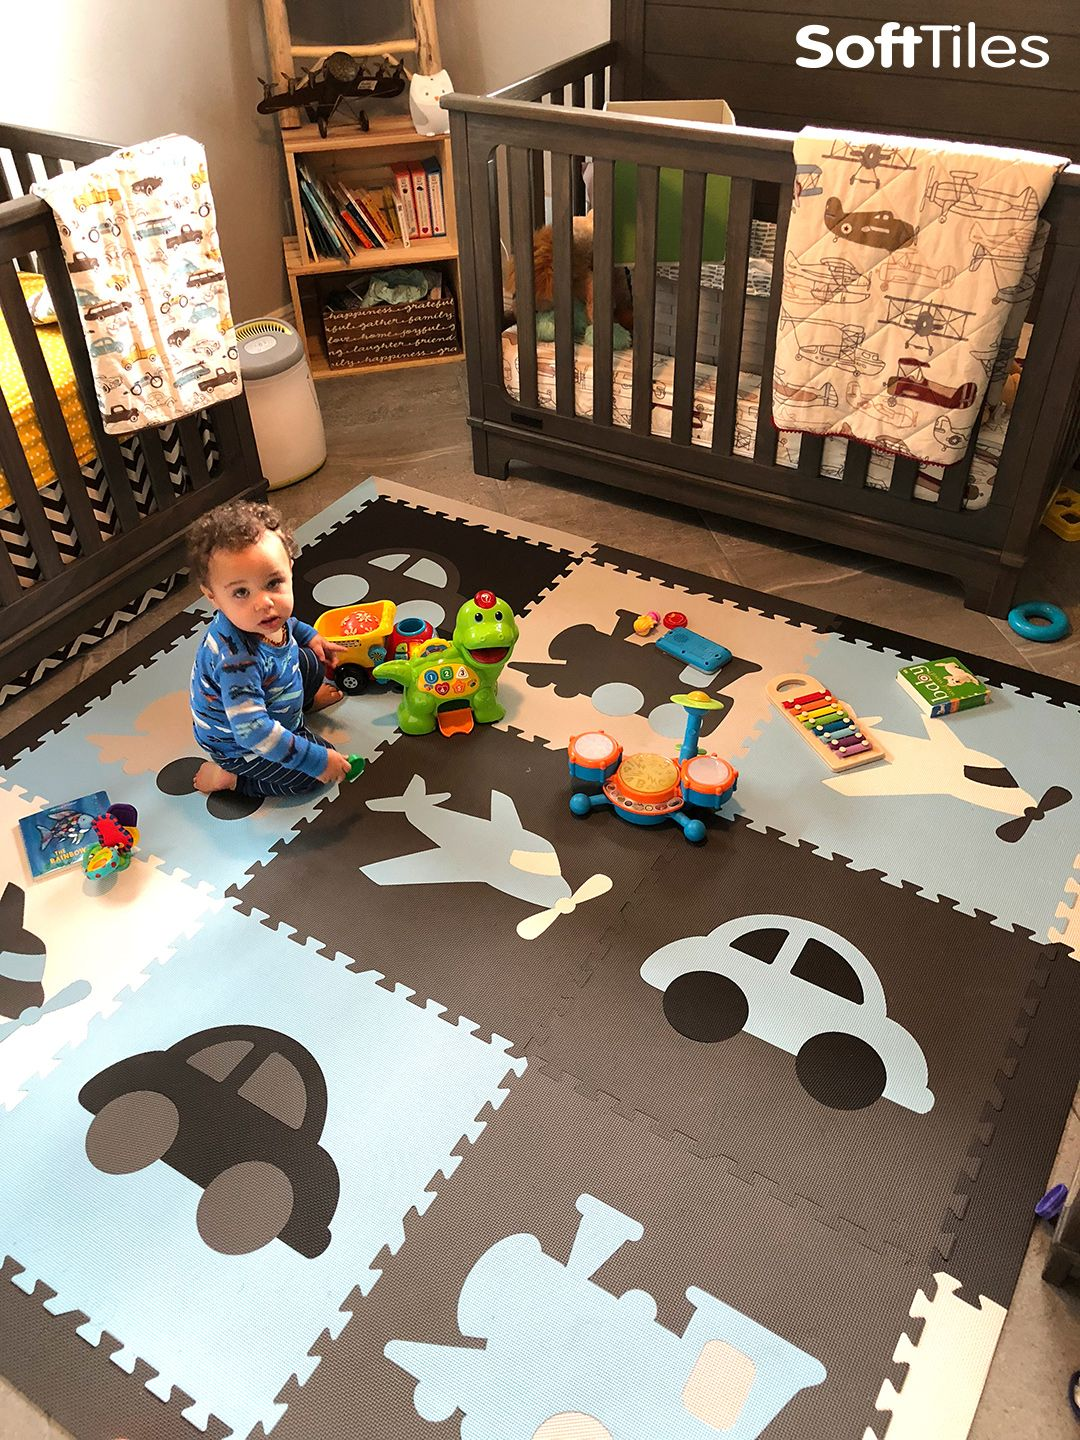 Fun Transportation Theme Play Mats For A Nursery Or Playroom These Foam Come With